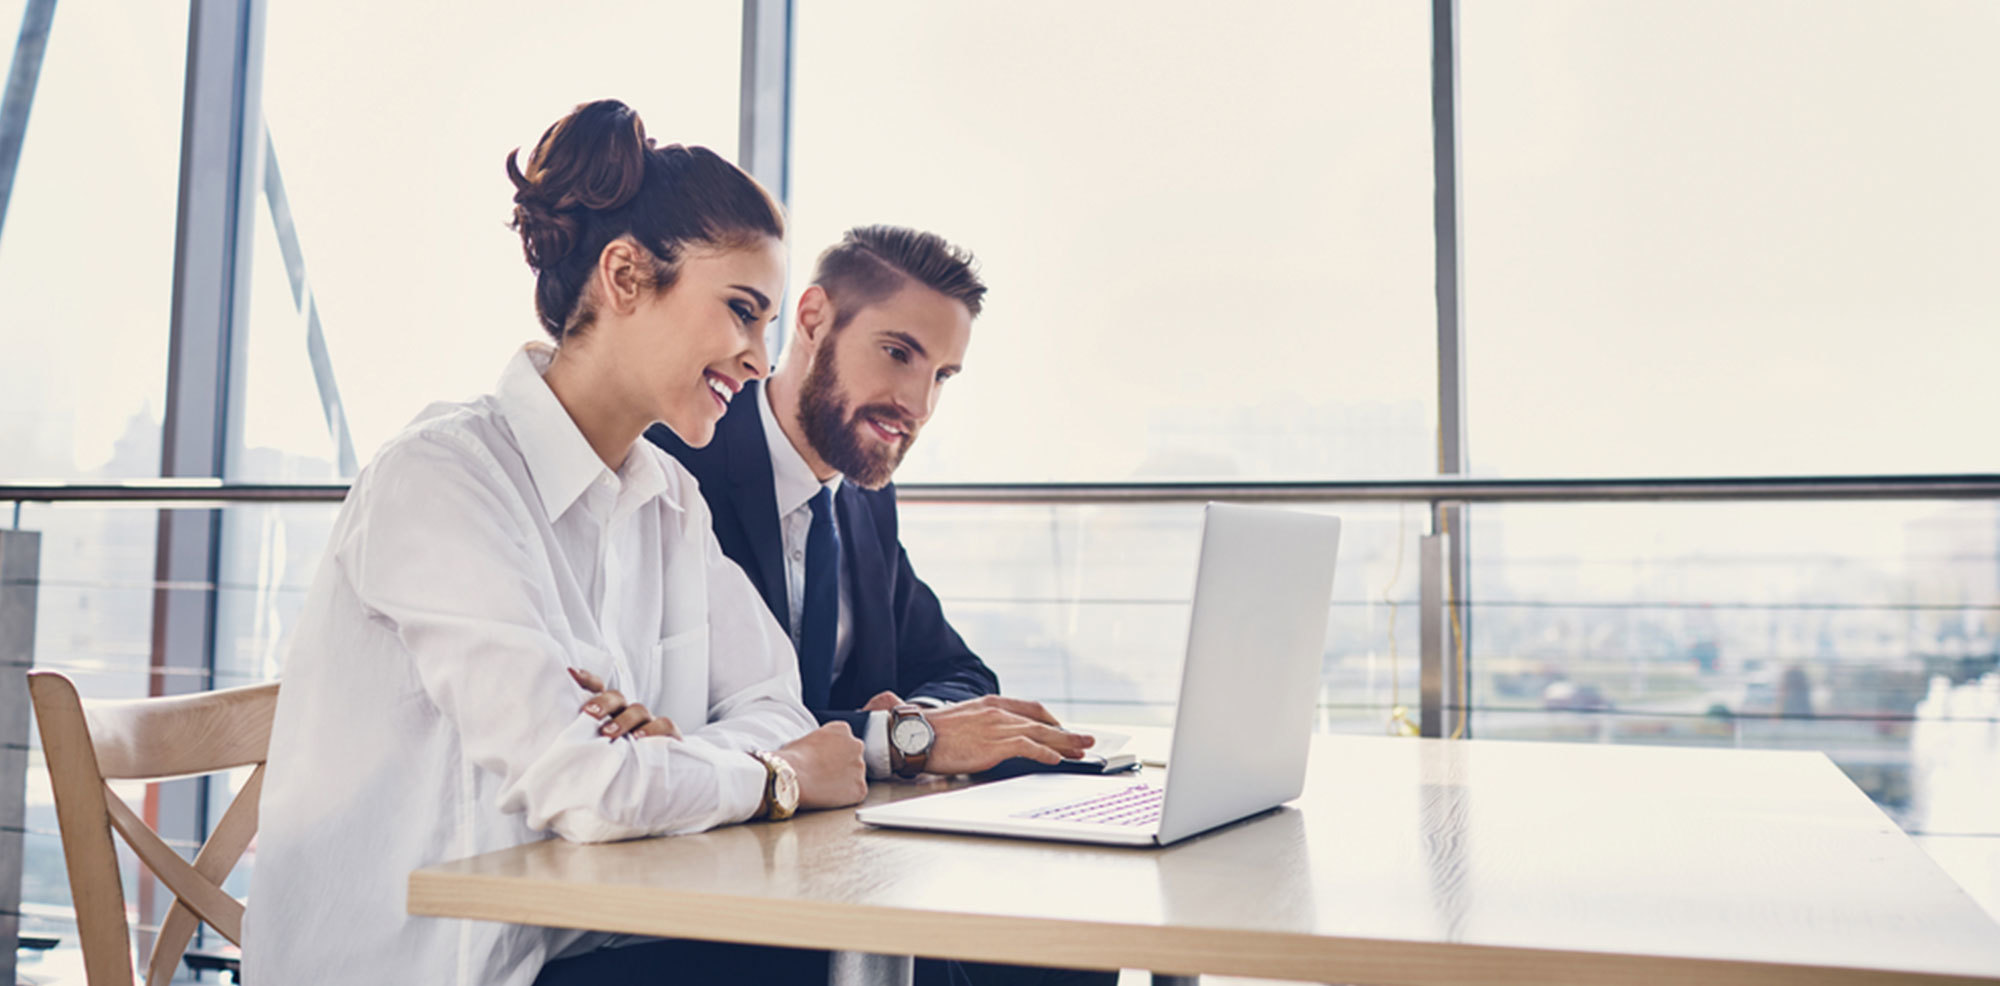 Professional business man and women smiling while working on a laptop